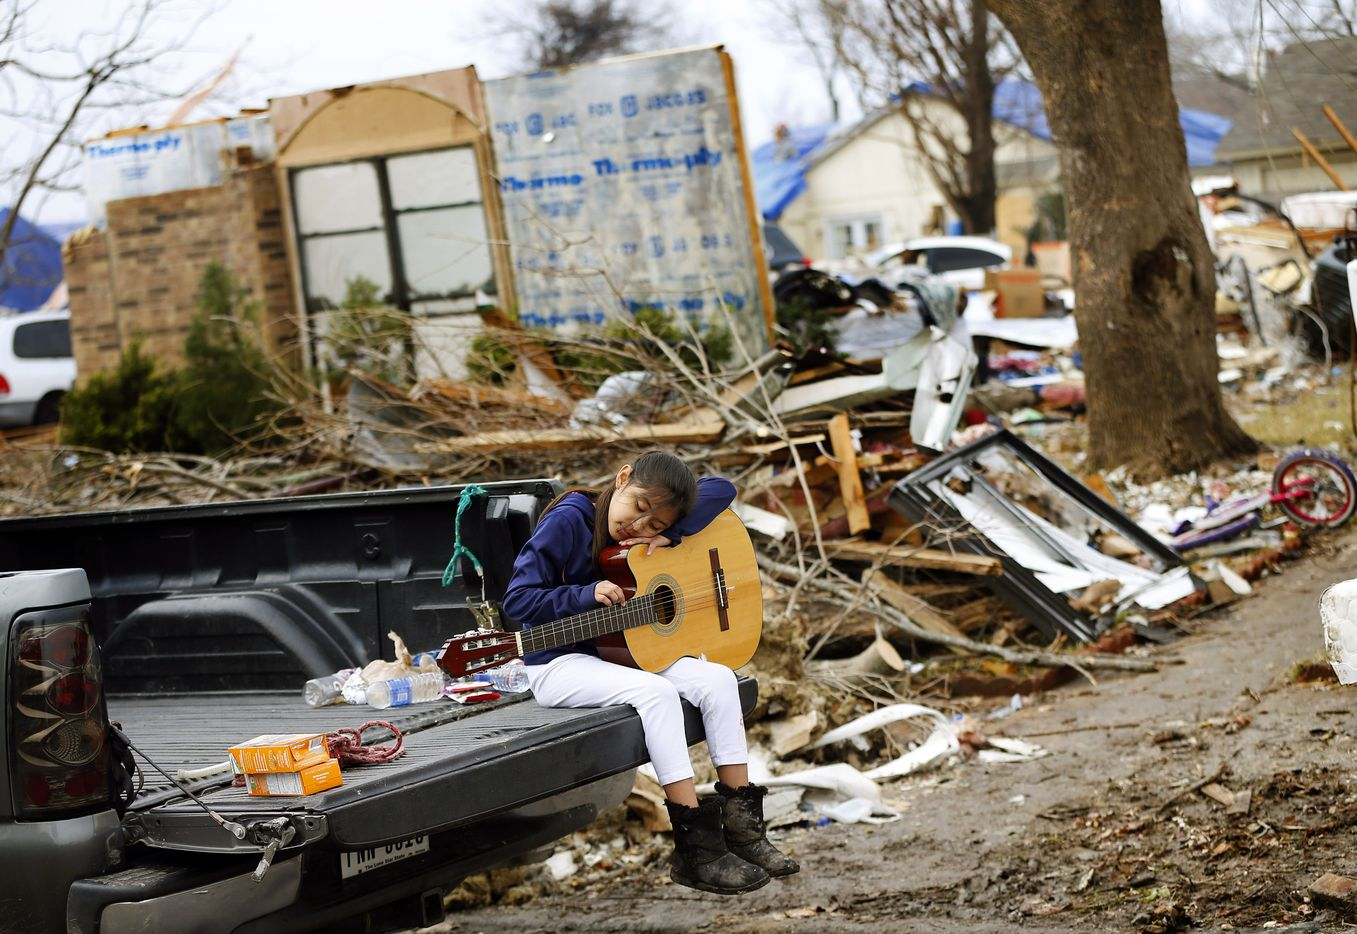 Natalie Rojas, 8, strums a guitar found in the bedroom of her tornado damaged home on Mariner Drive in Rowlett on Jan. 8, 2016. Volunteer groups continued to clean up the tornado-ravaged neighborhood off Schrade Road. The guitar was a gift from her uncle.